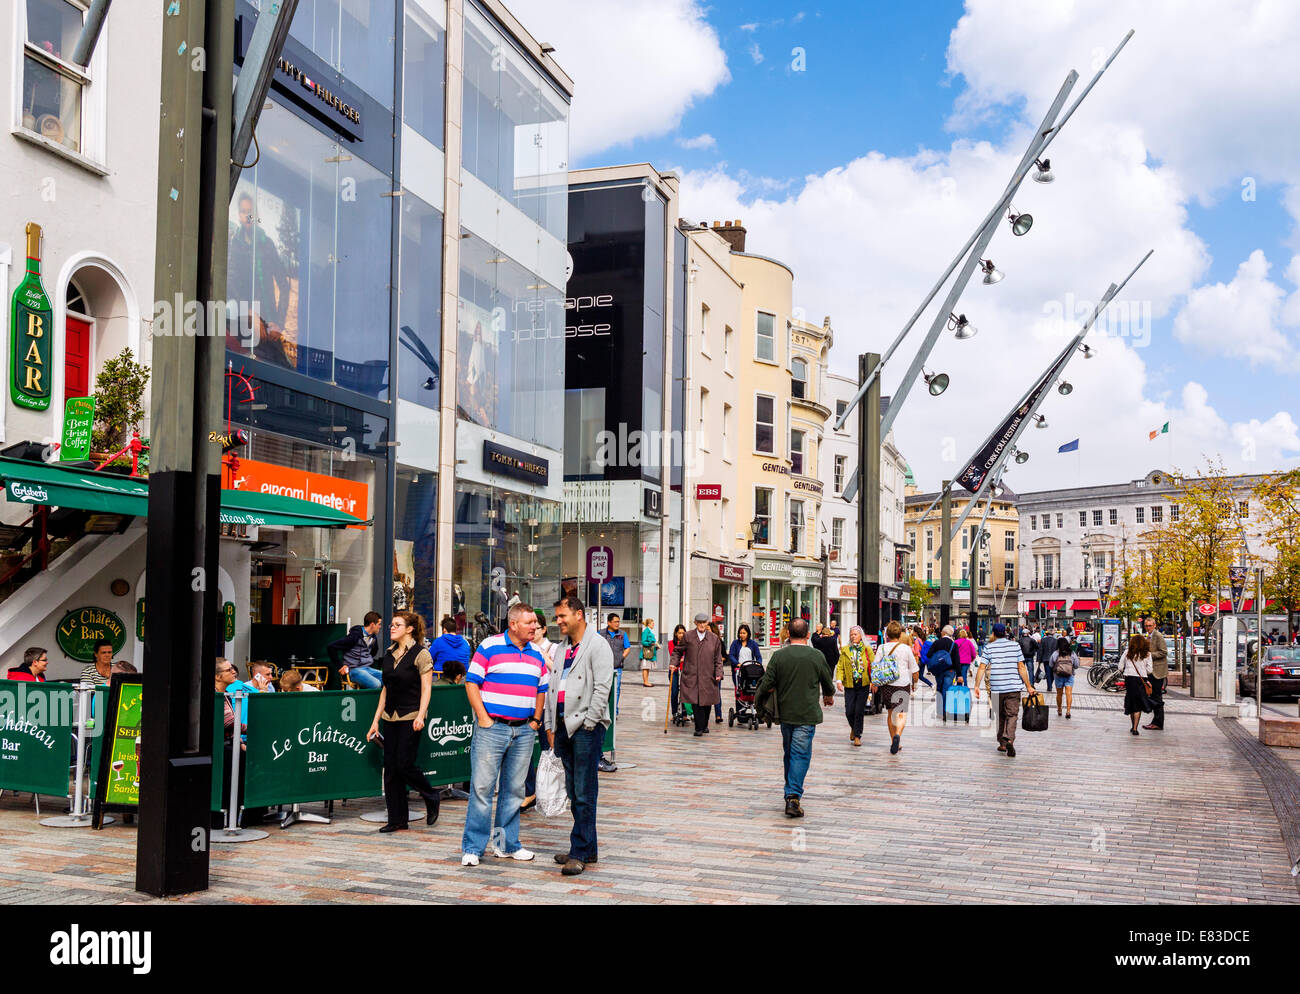 Shops on St Patrick's Street in the city centre, Cork, County Cork, Republic of Ireland - Stock Image